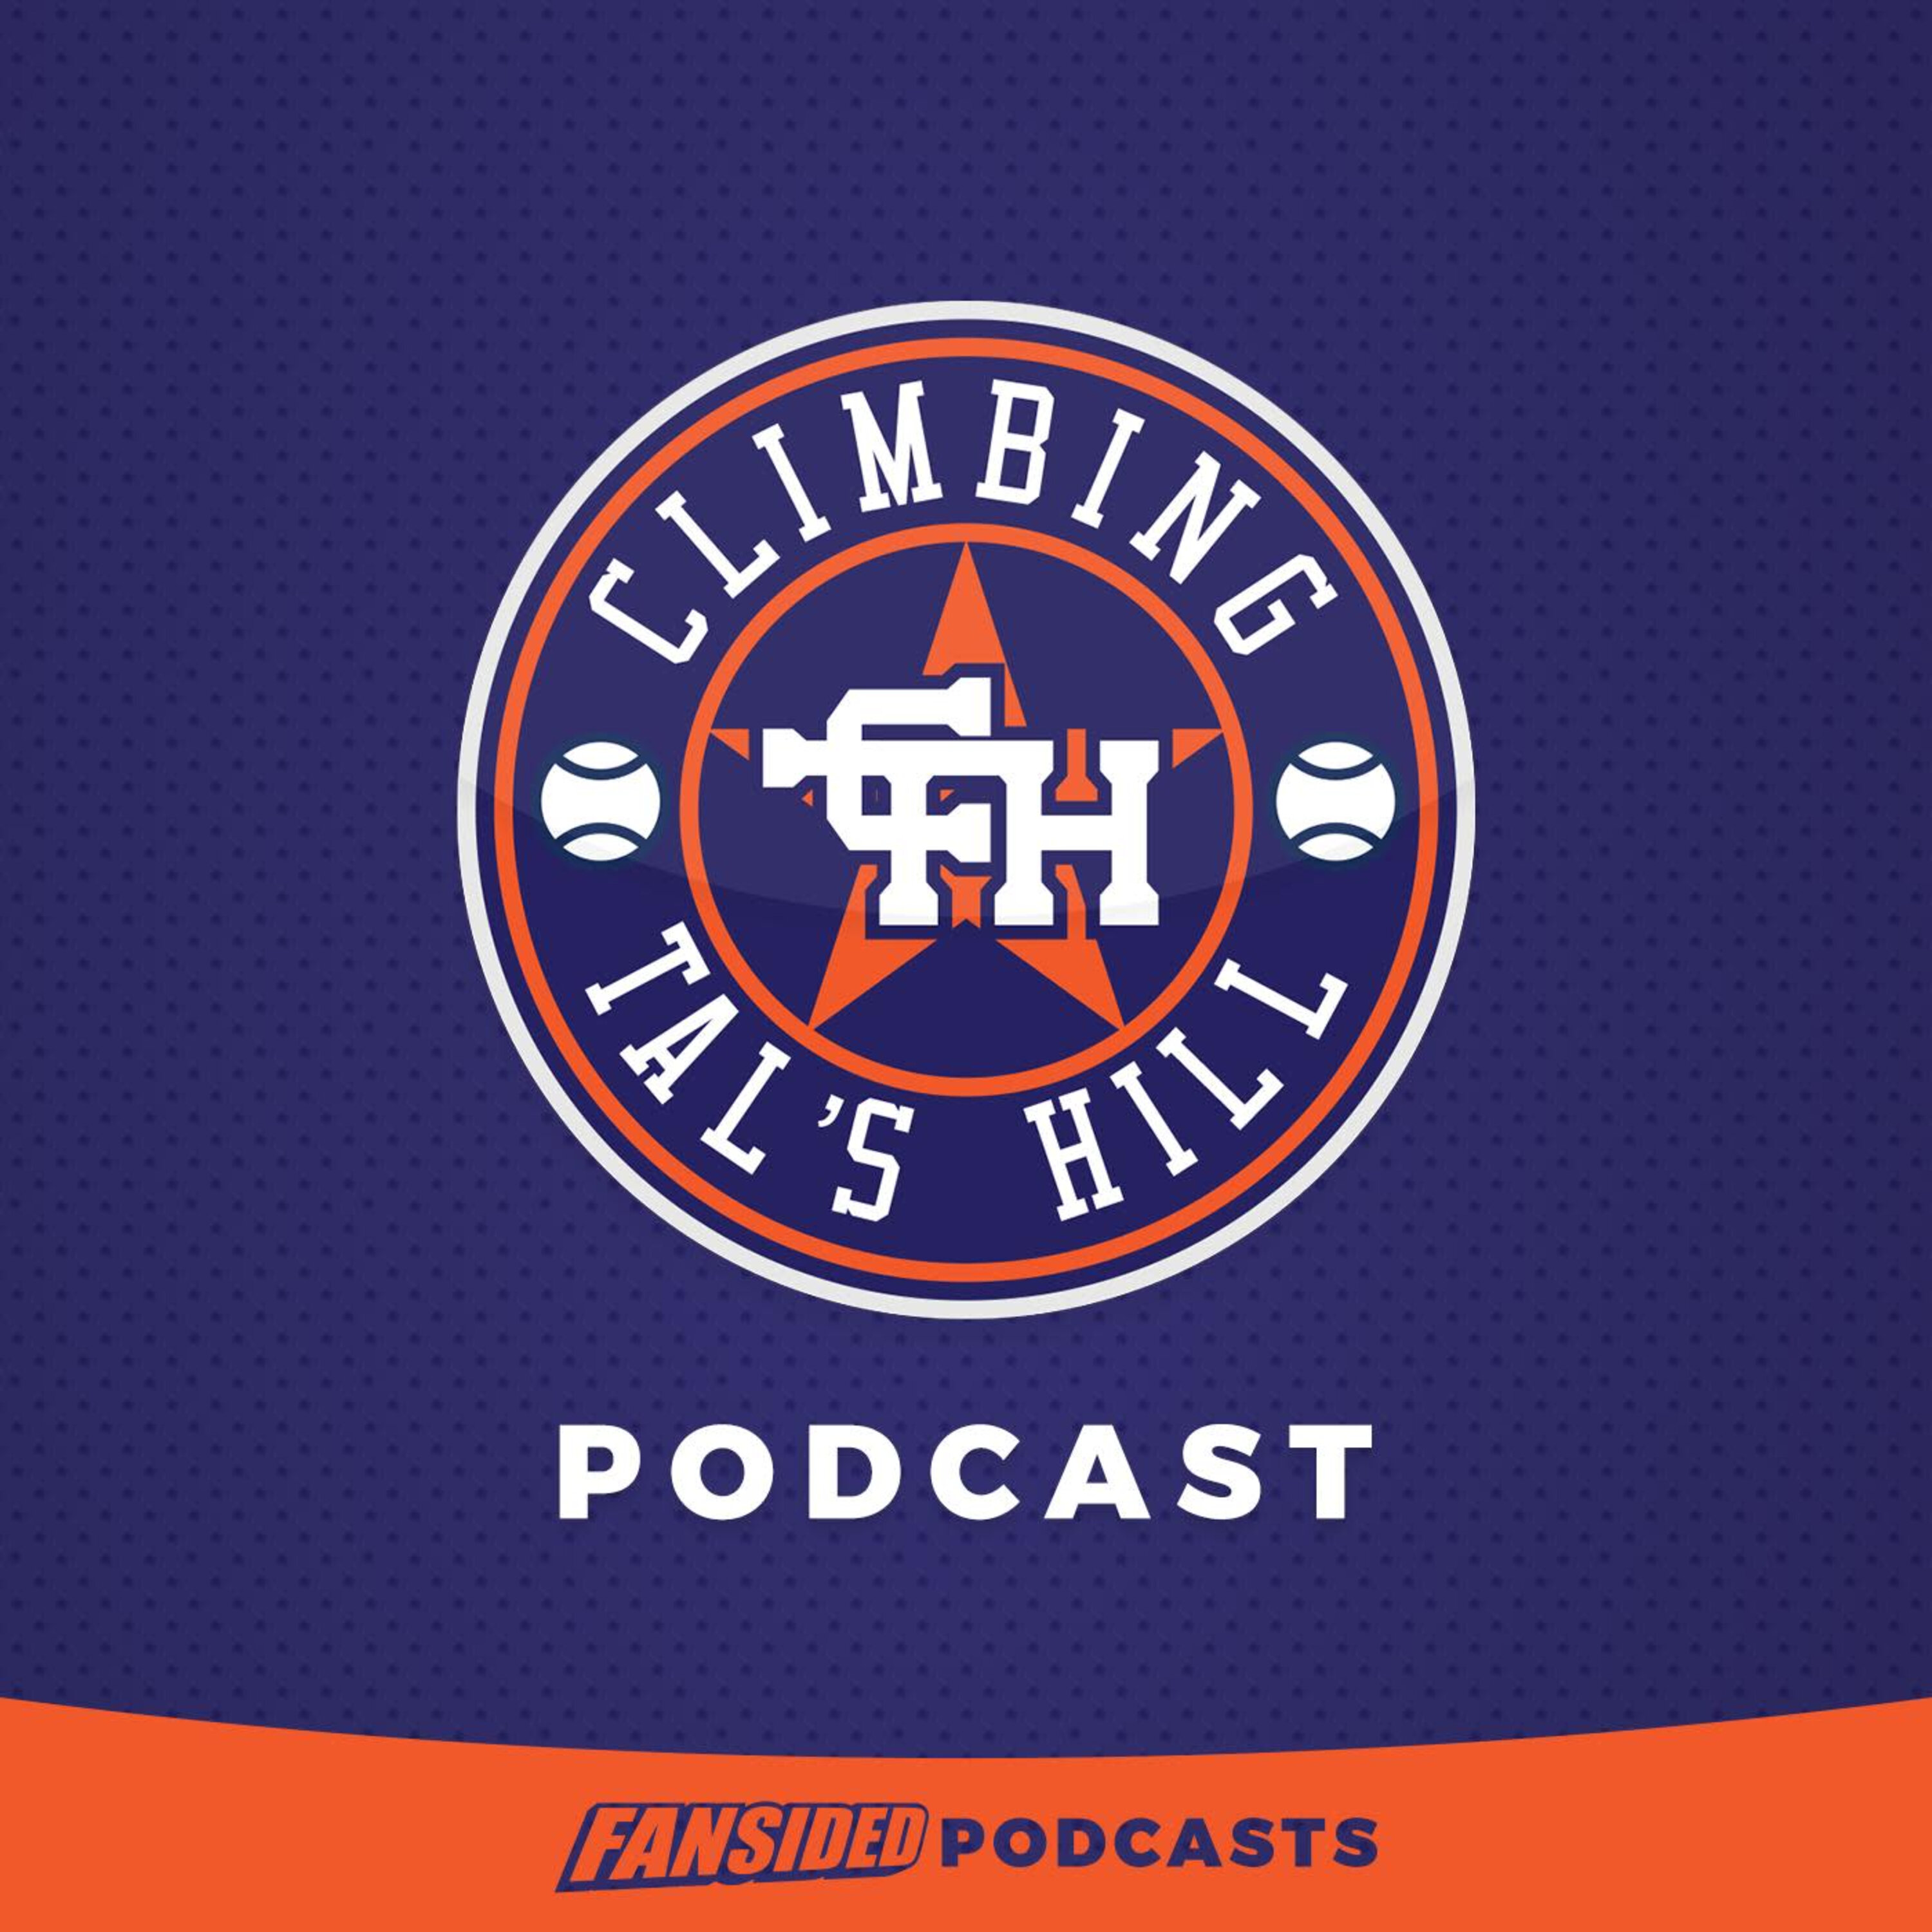 CTH Podcast: The Astros met the president, did they RSVP for next year?